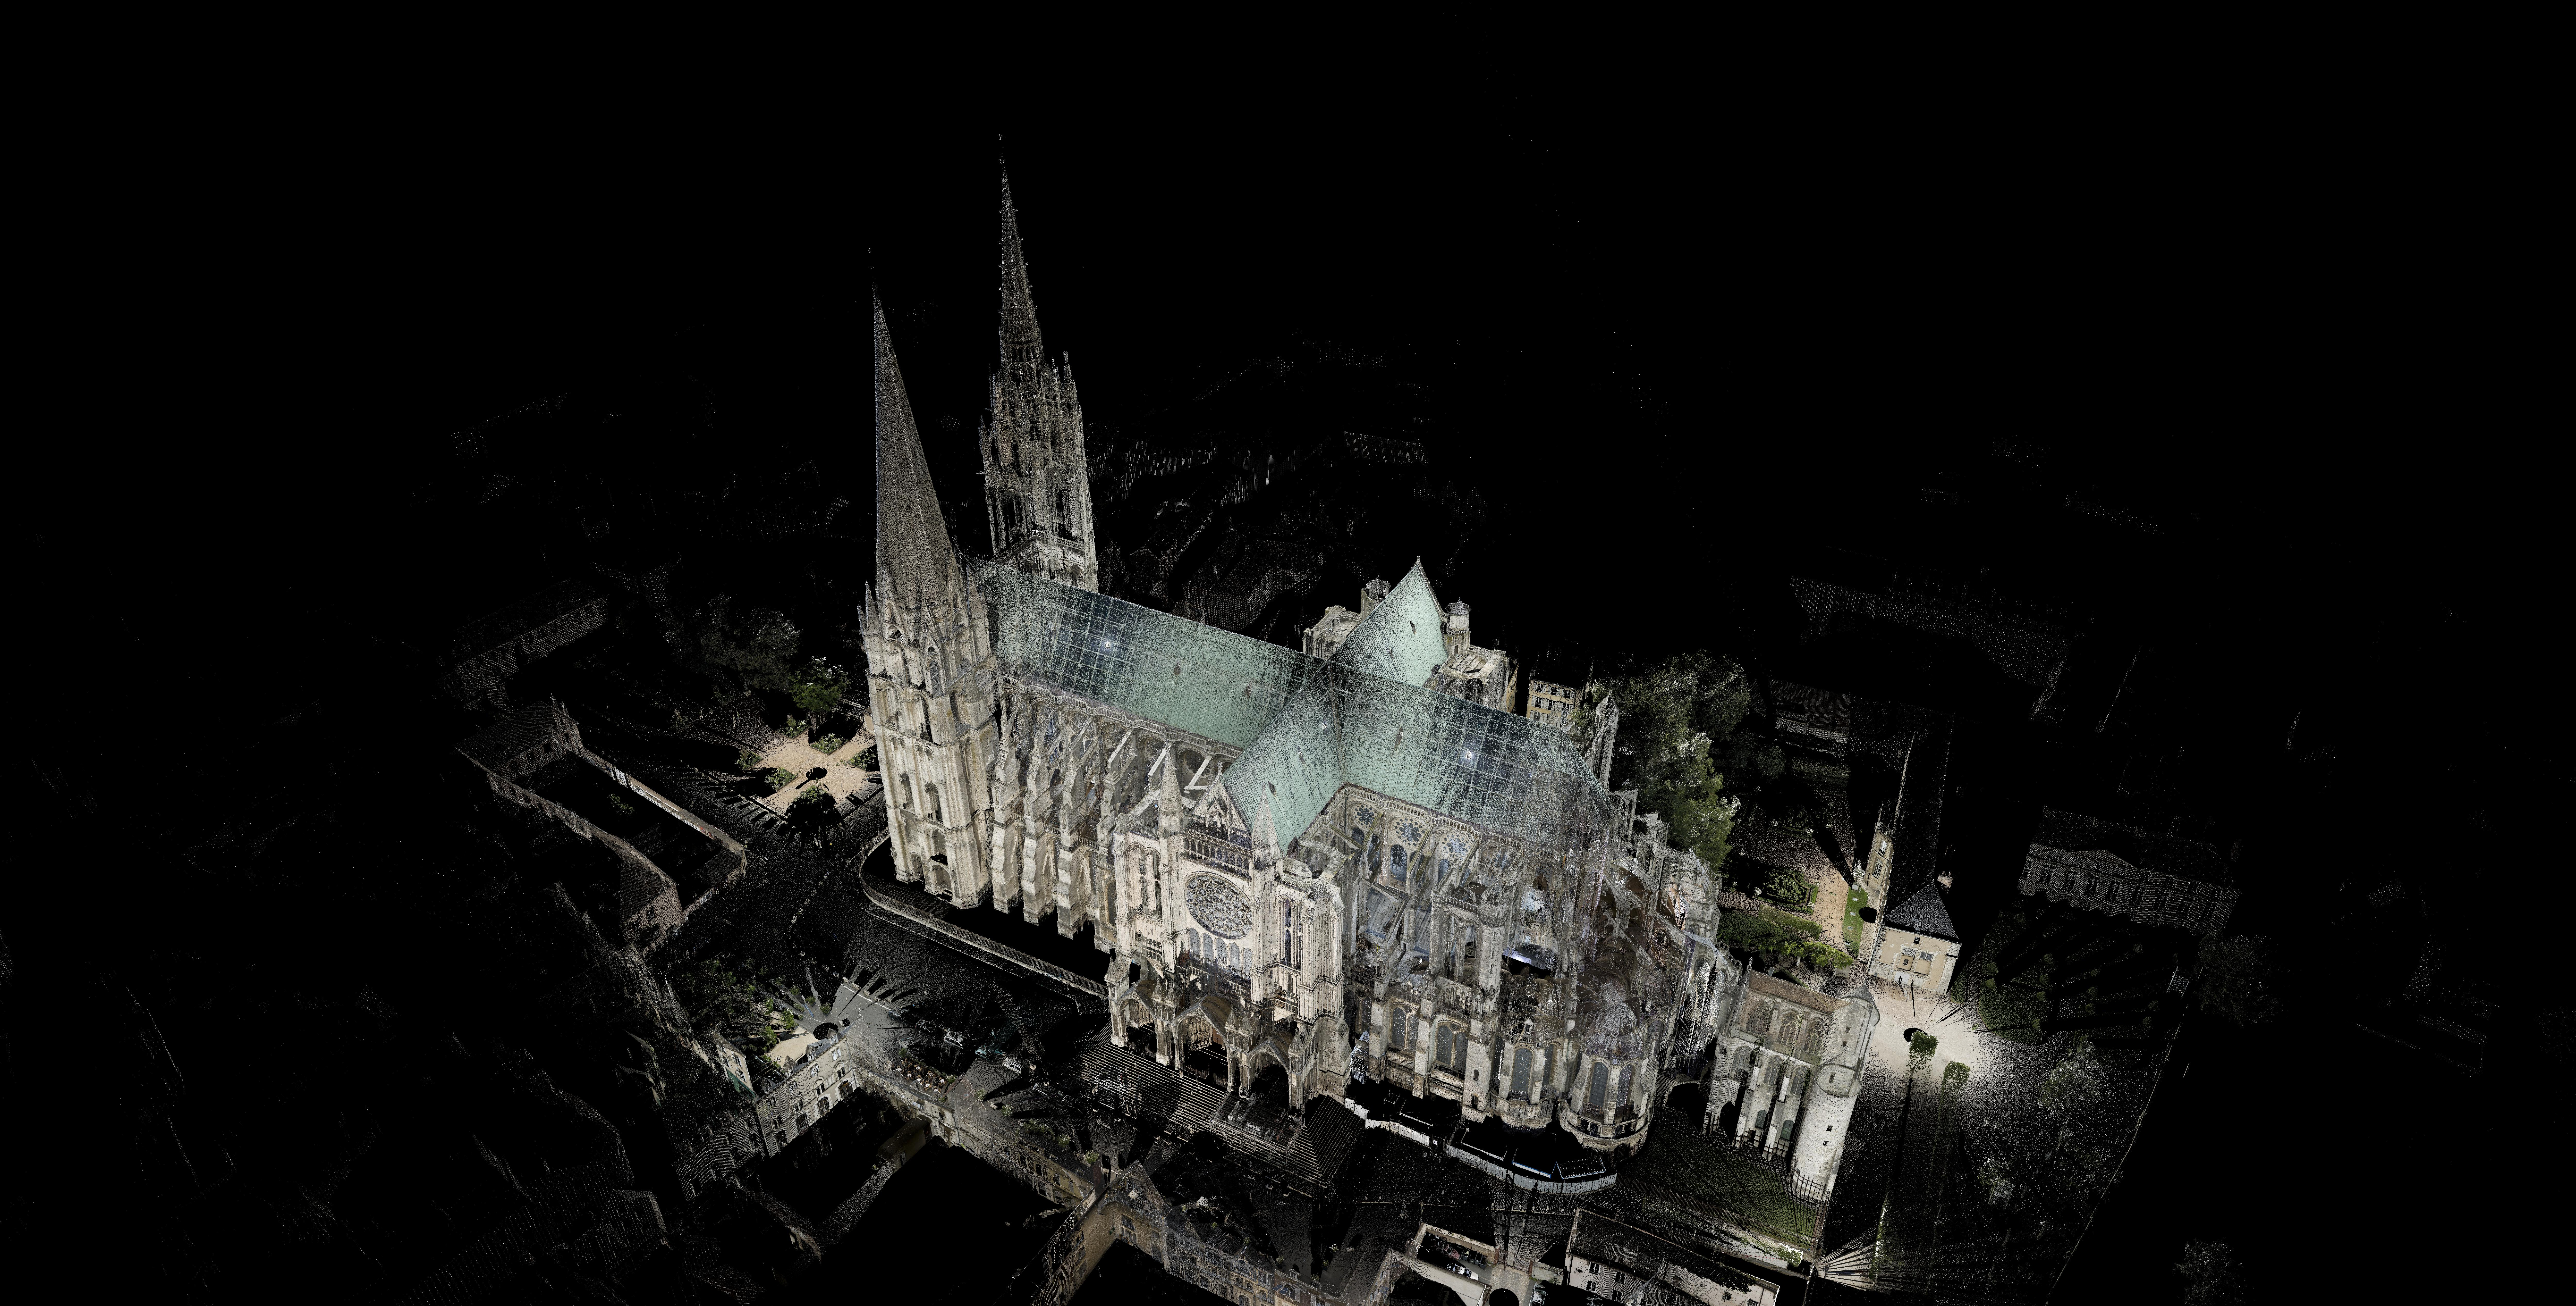 Fig. 1: A bird's eye view of the Chartres laser scan (not unified).